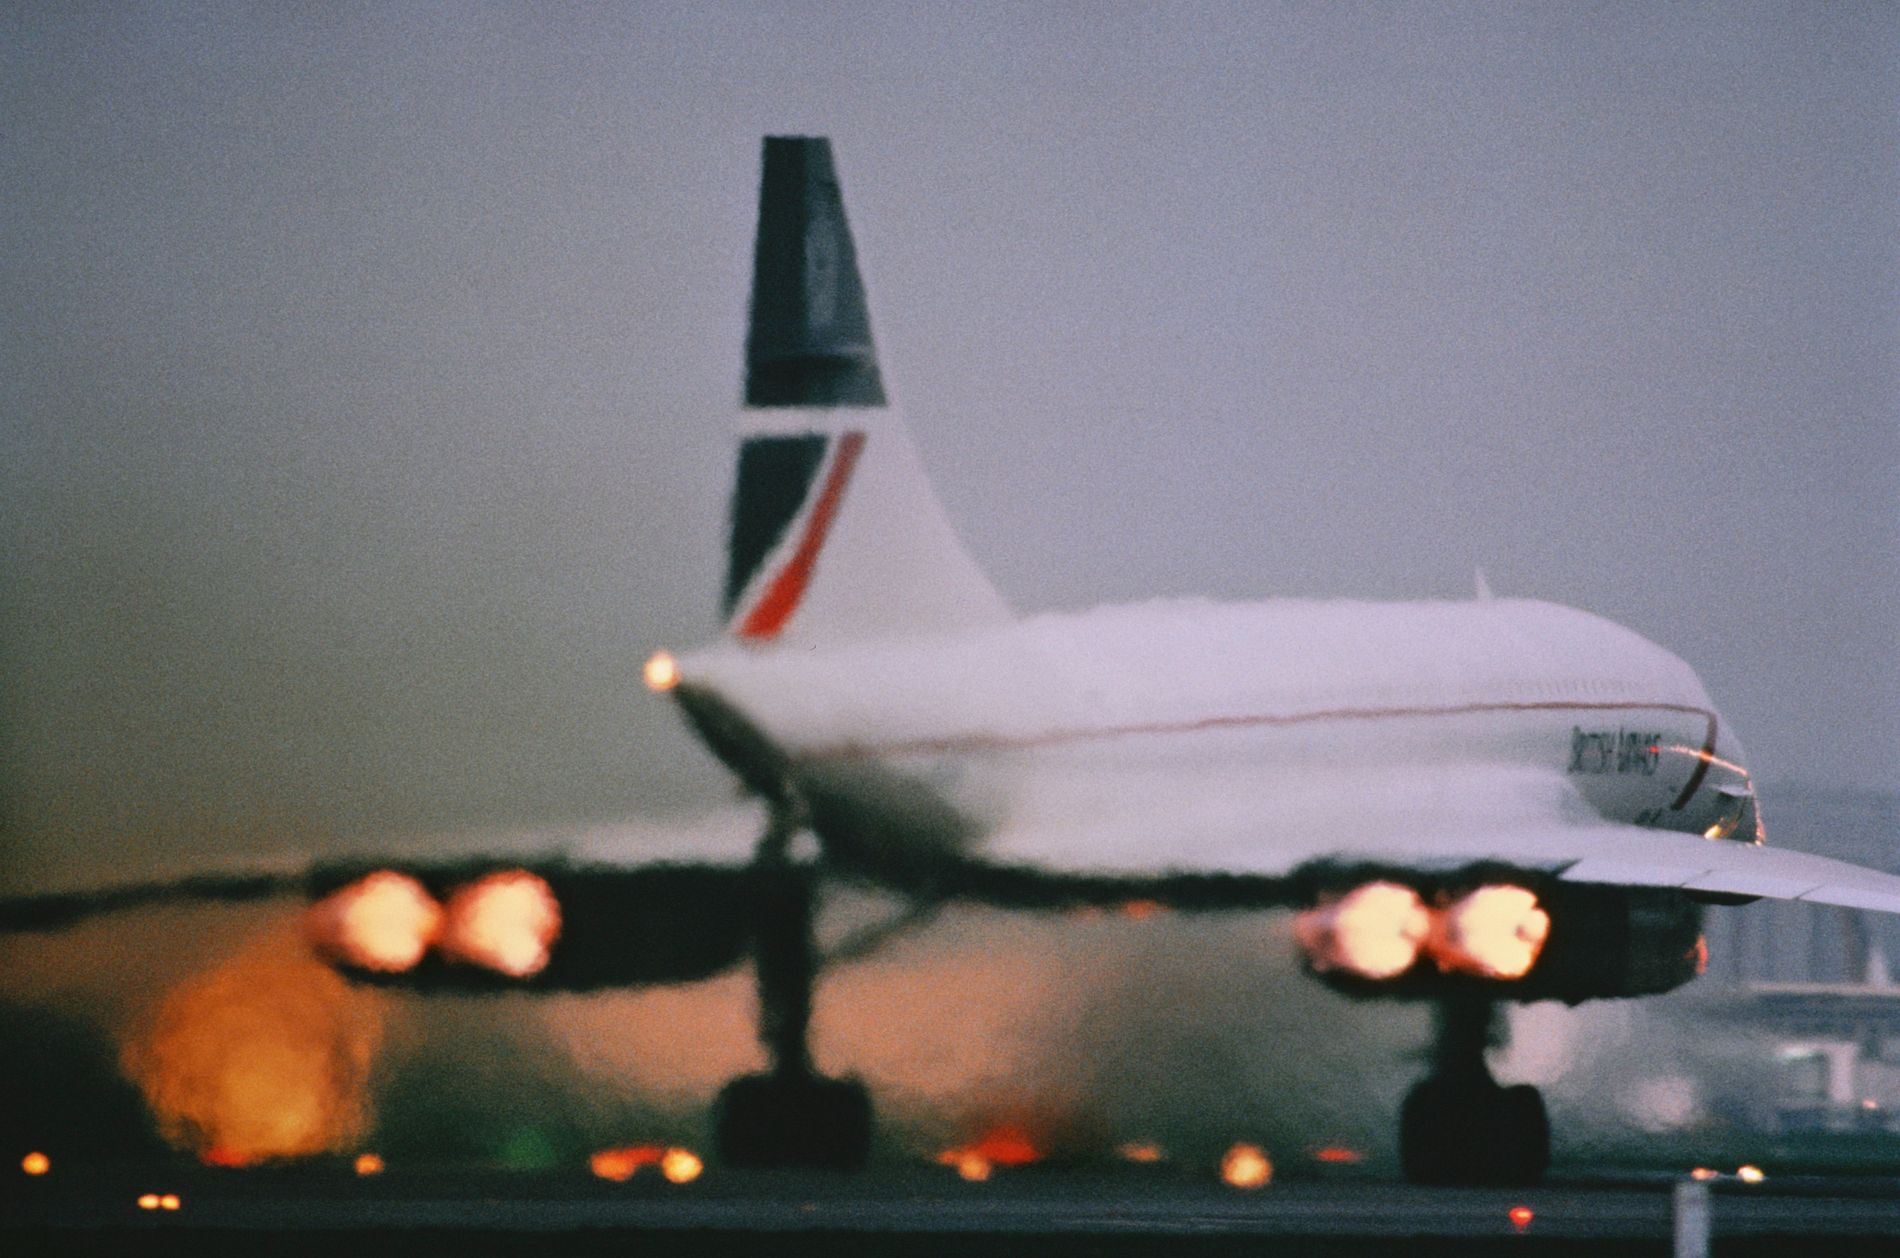 Afterburners were essential for getting Concorde through the sound barrier. The enormous consumption of fuel was one of Concorde's downfalls –as fuel prices rose, profitability fell.